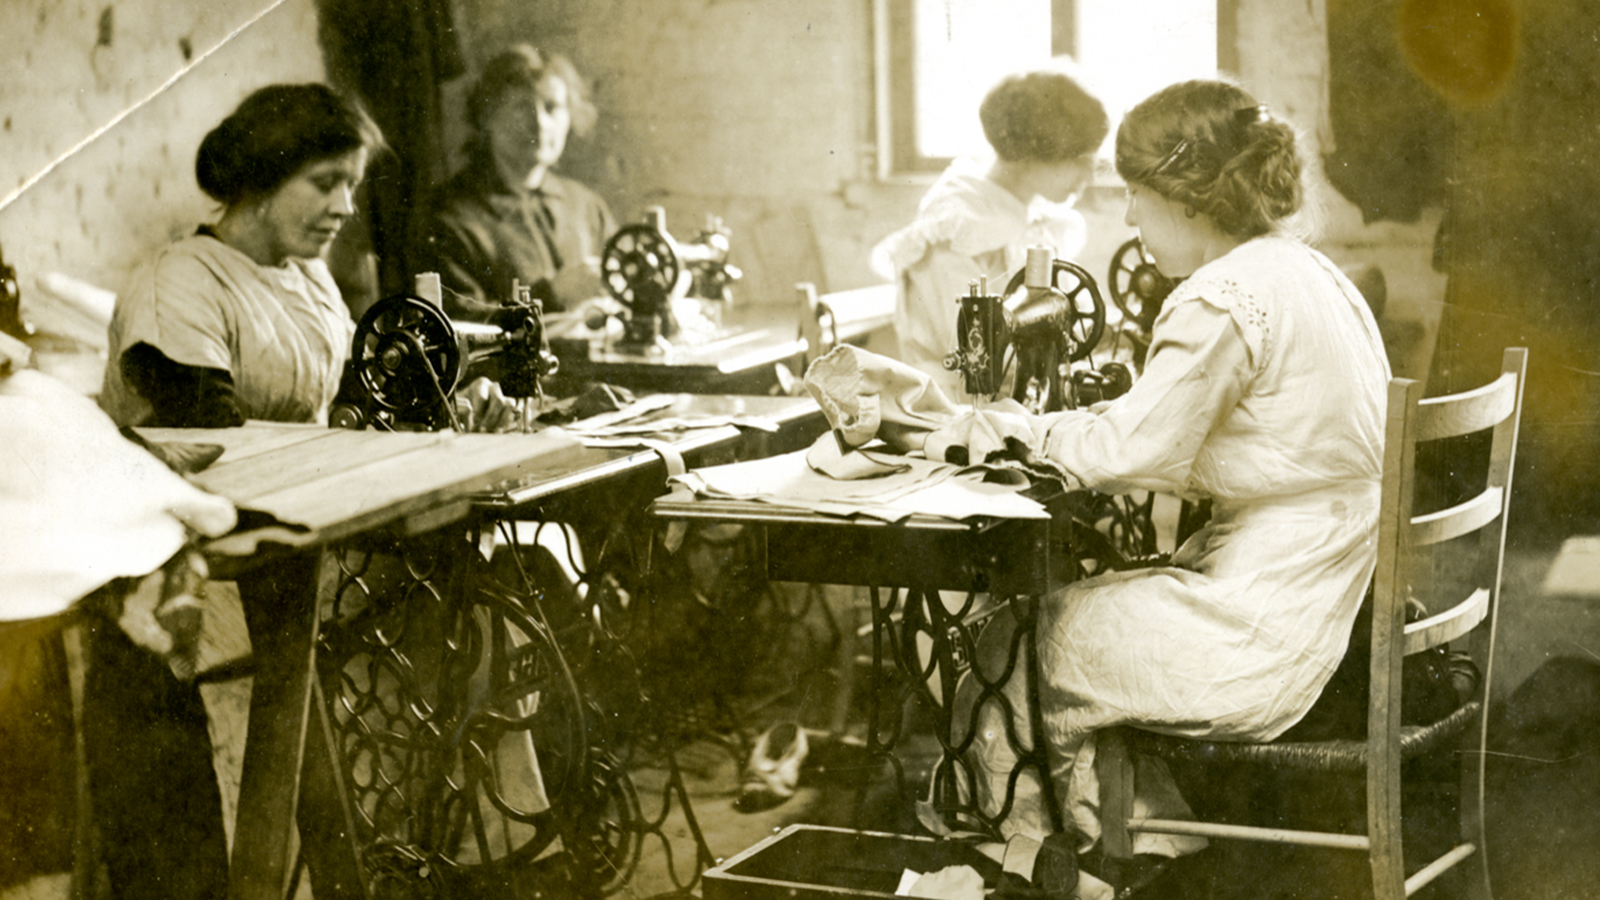 Working class women thumbnail - showing 4 women at work in a sewing factory